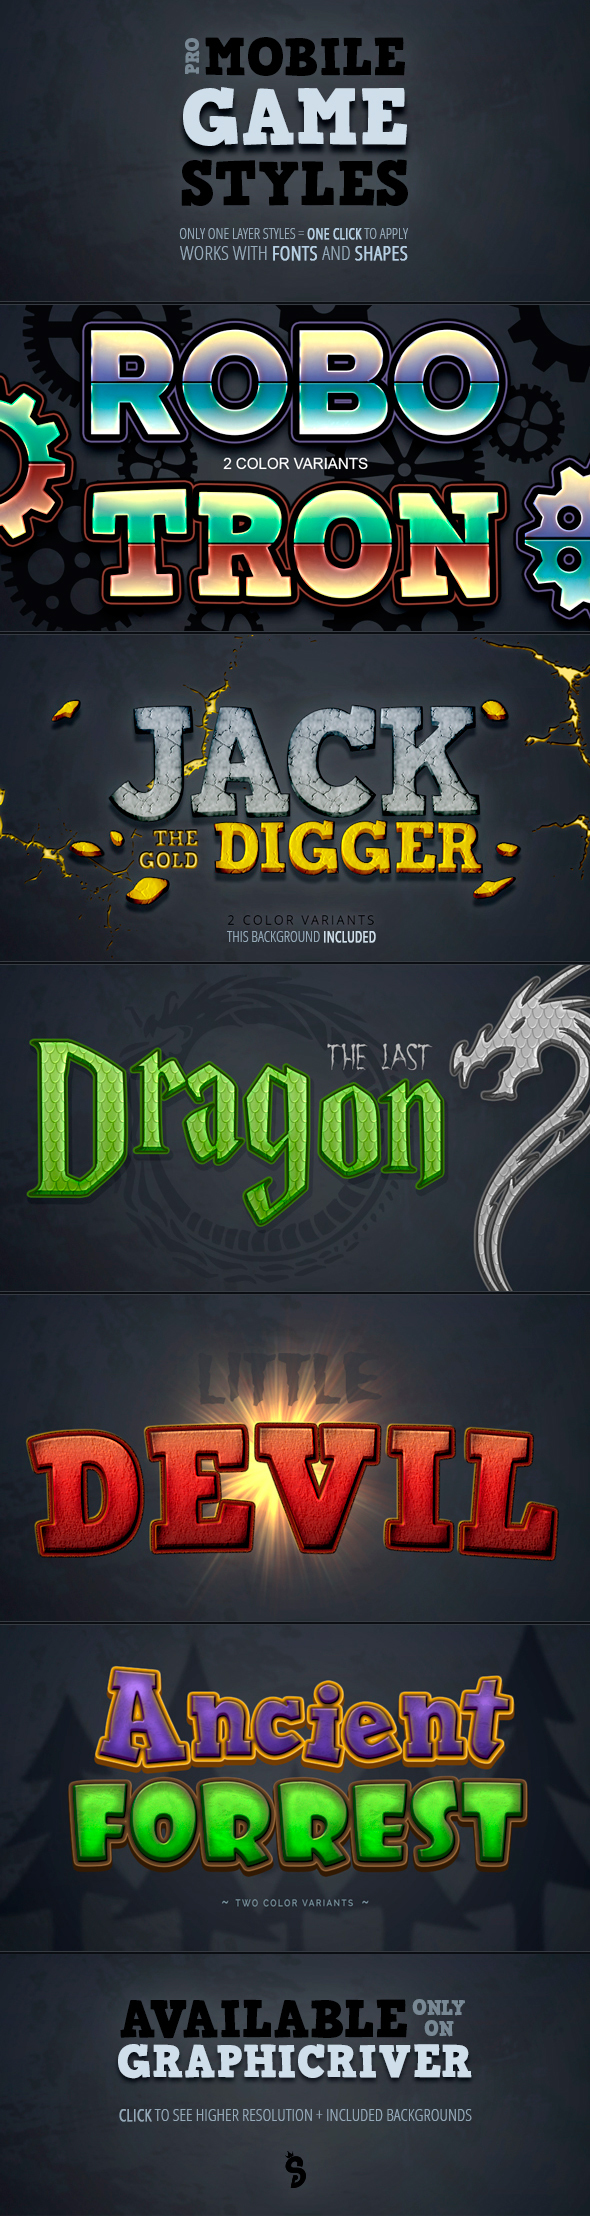 Mobile Game Photoshop Styles